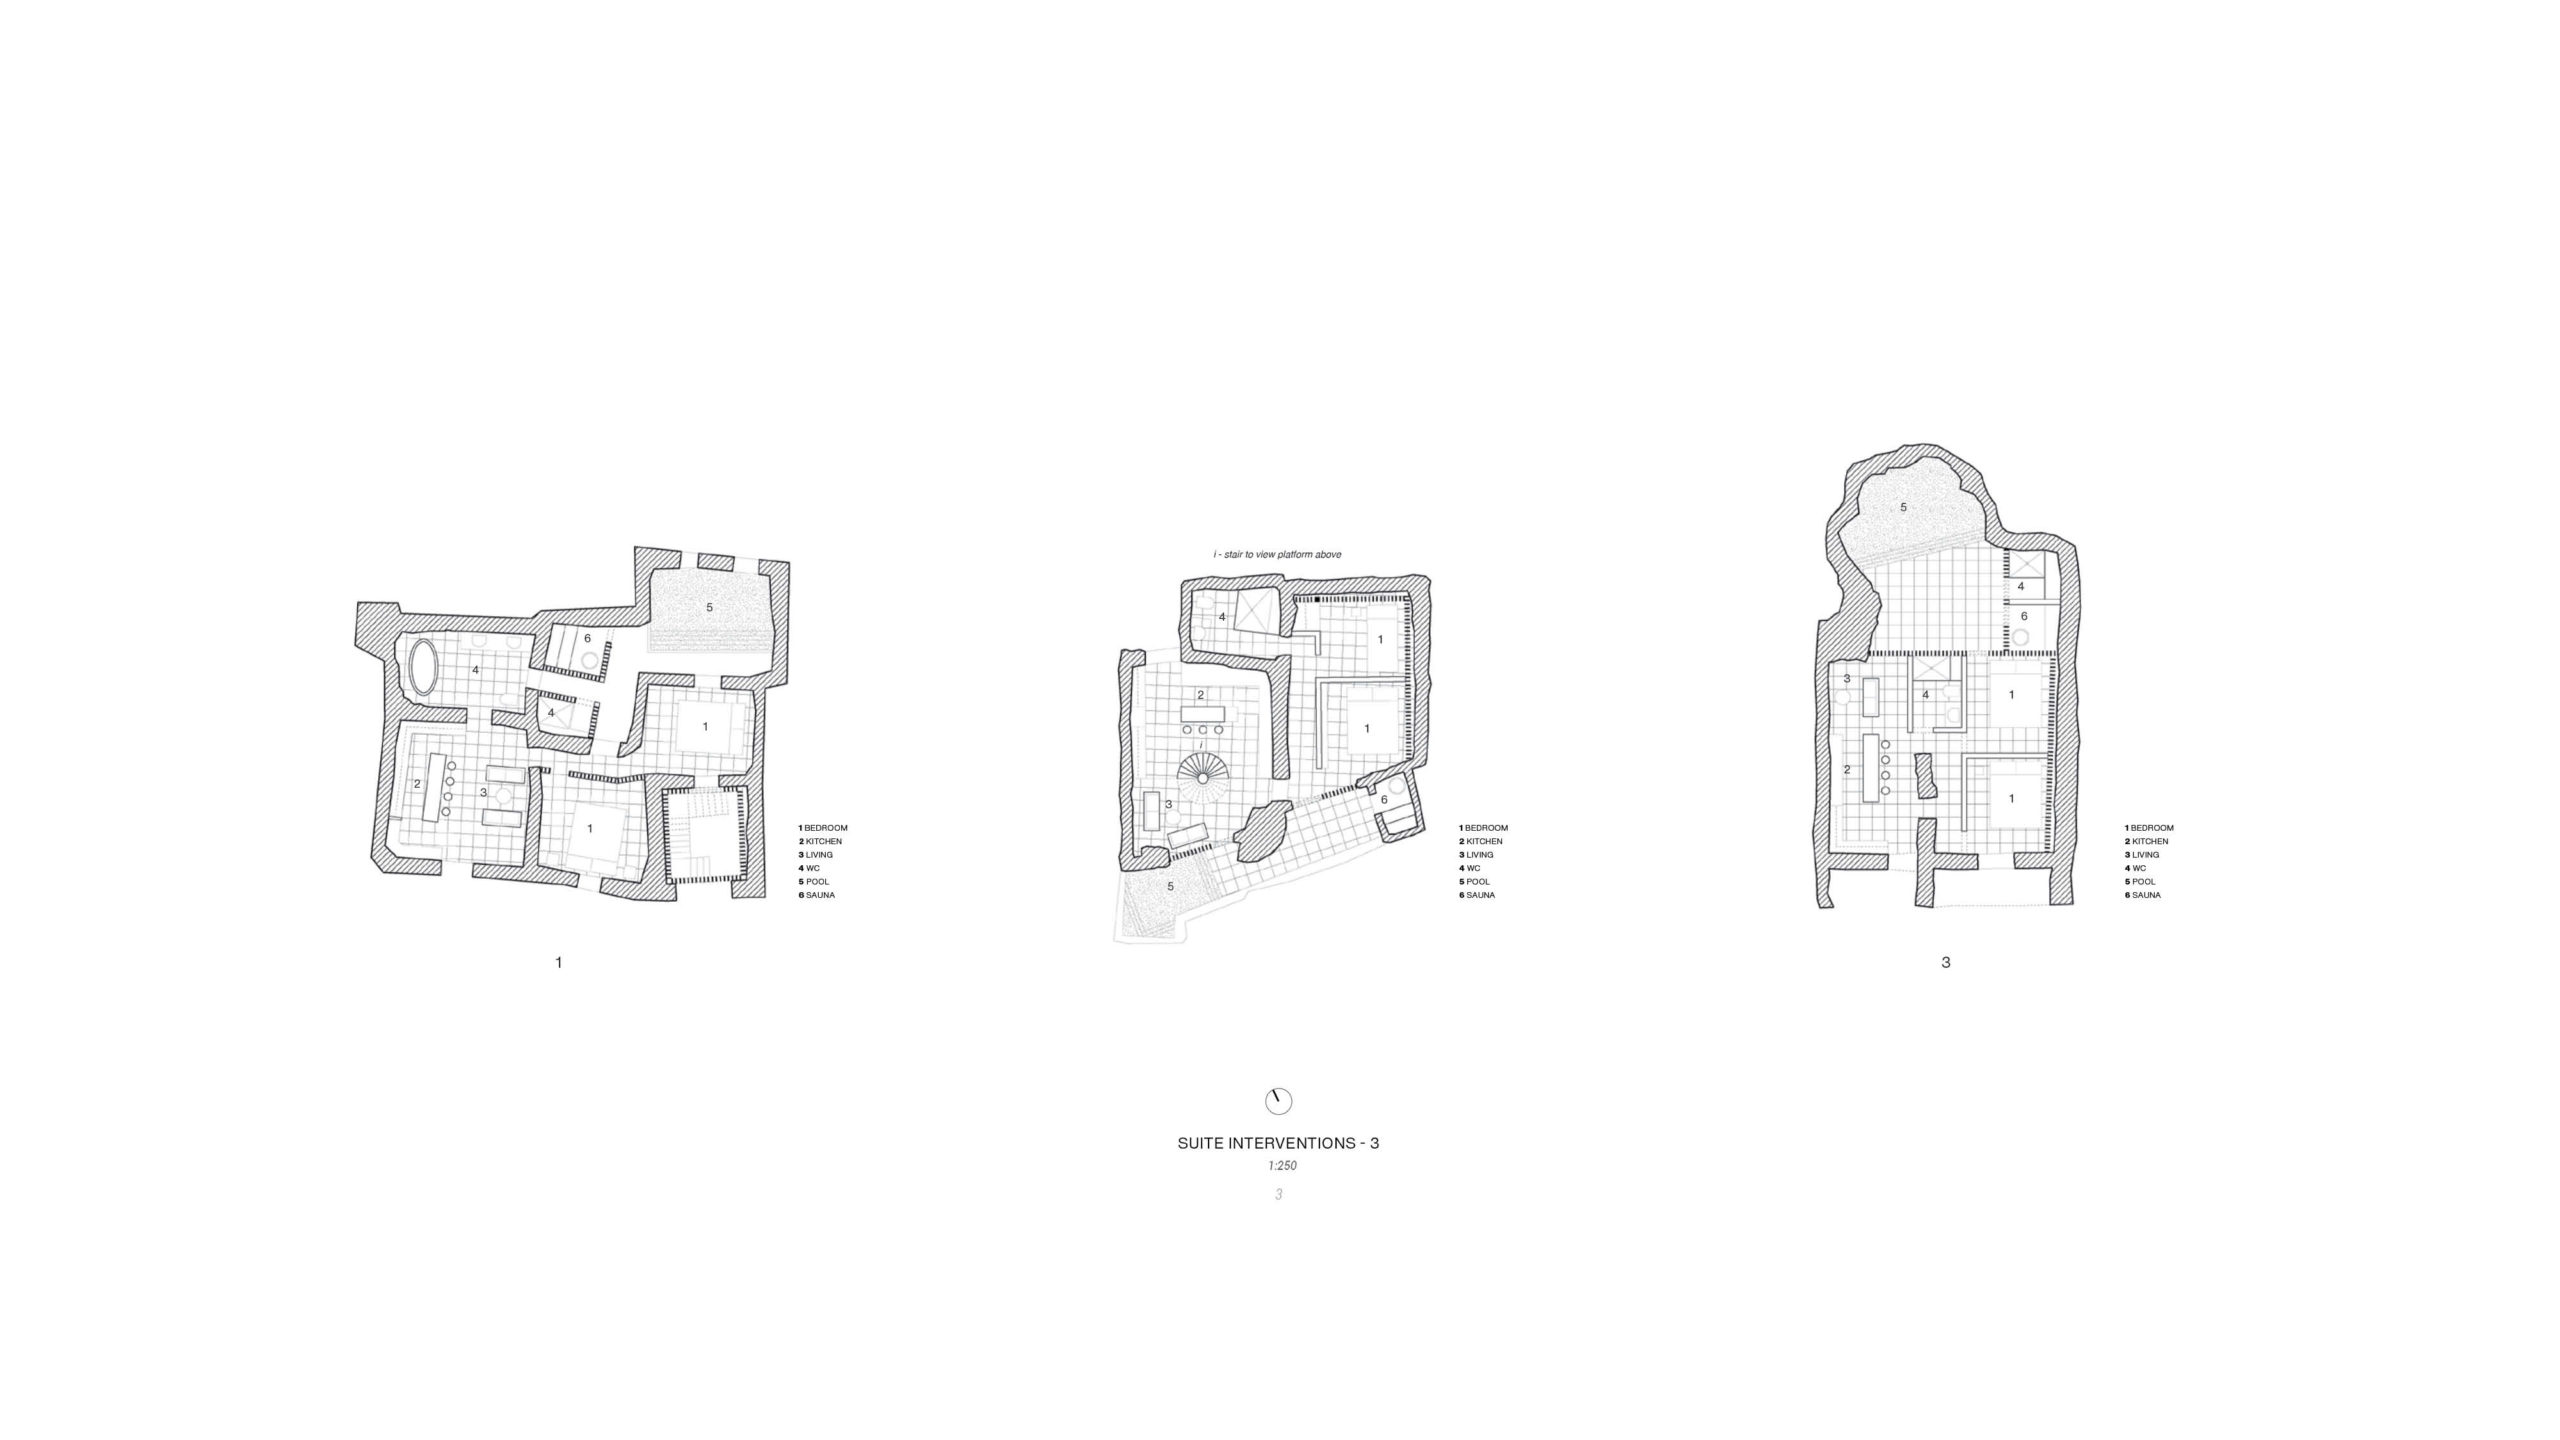 Unbuilt : TRACES - GHOST TOWN REFUGE, at Craco, Italy, by Claudio C. Araya, Yahya Abdullah 9